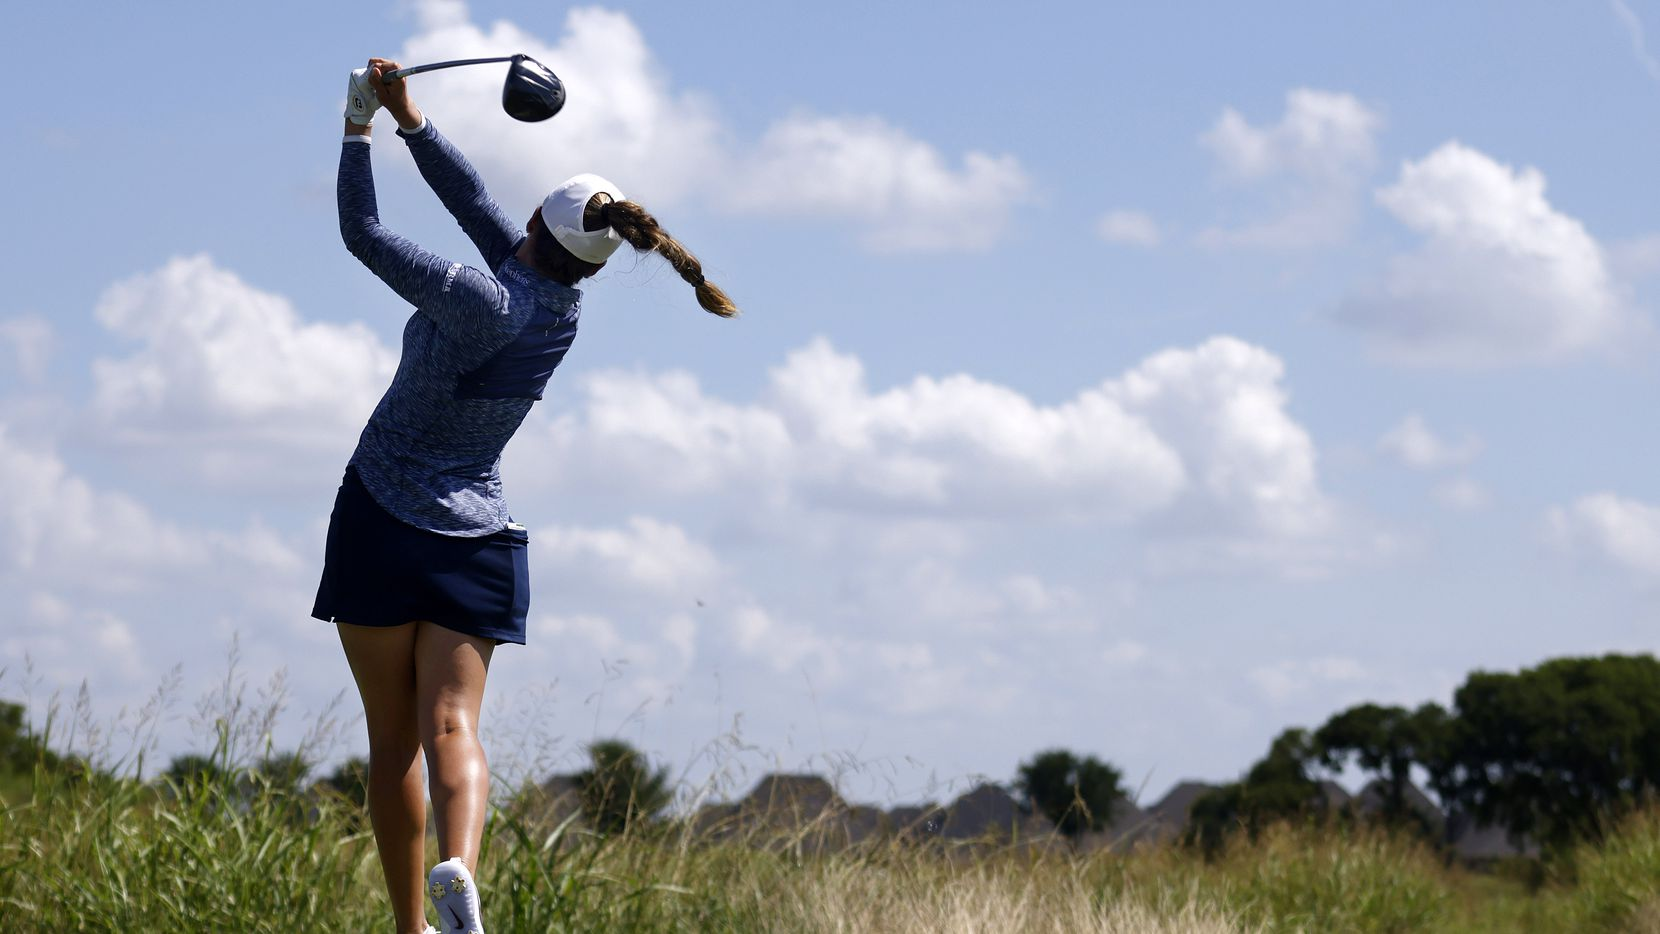 Professional golfer Gaby Lopez follows through on her drive on No. 1 during the opening round of the LPGA VOA Classic at the Old American Golf Club in The Colony, Texas, Thursday, July 1, 2021.